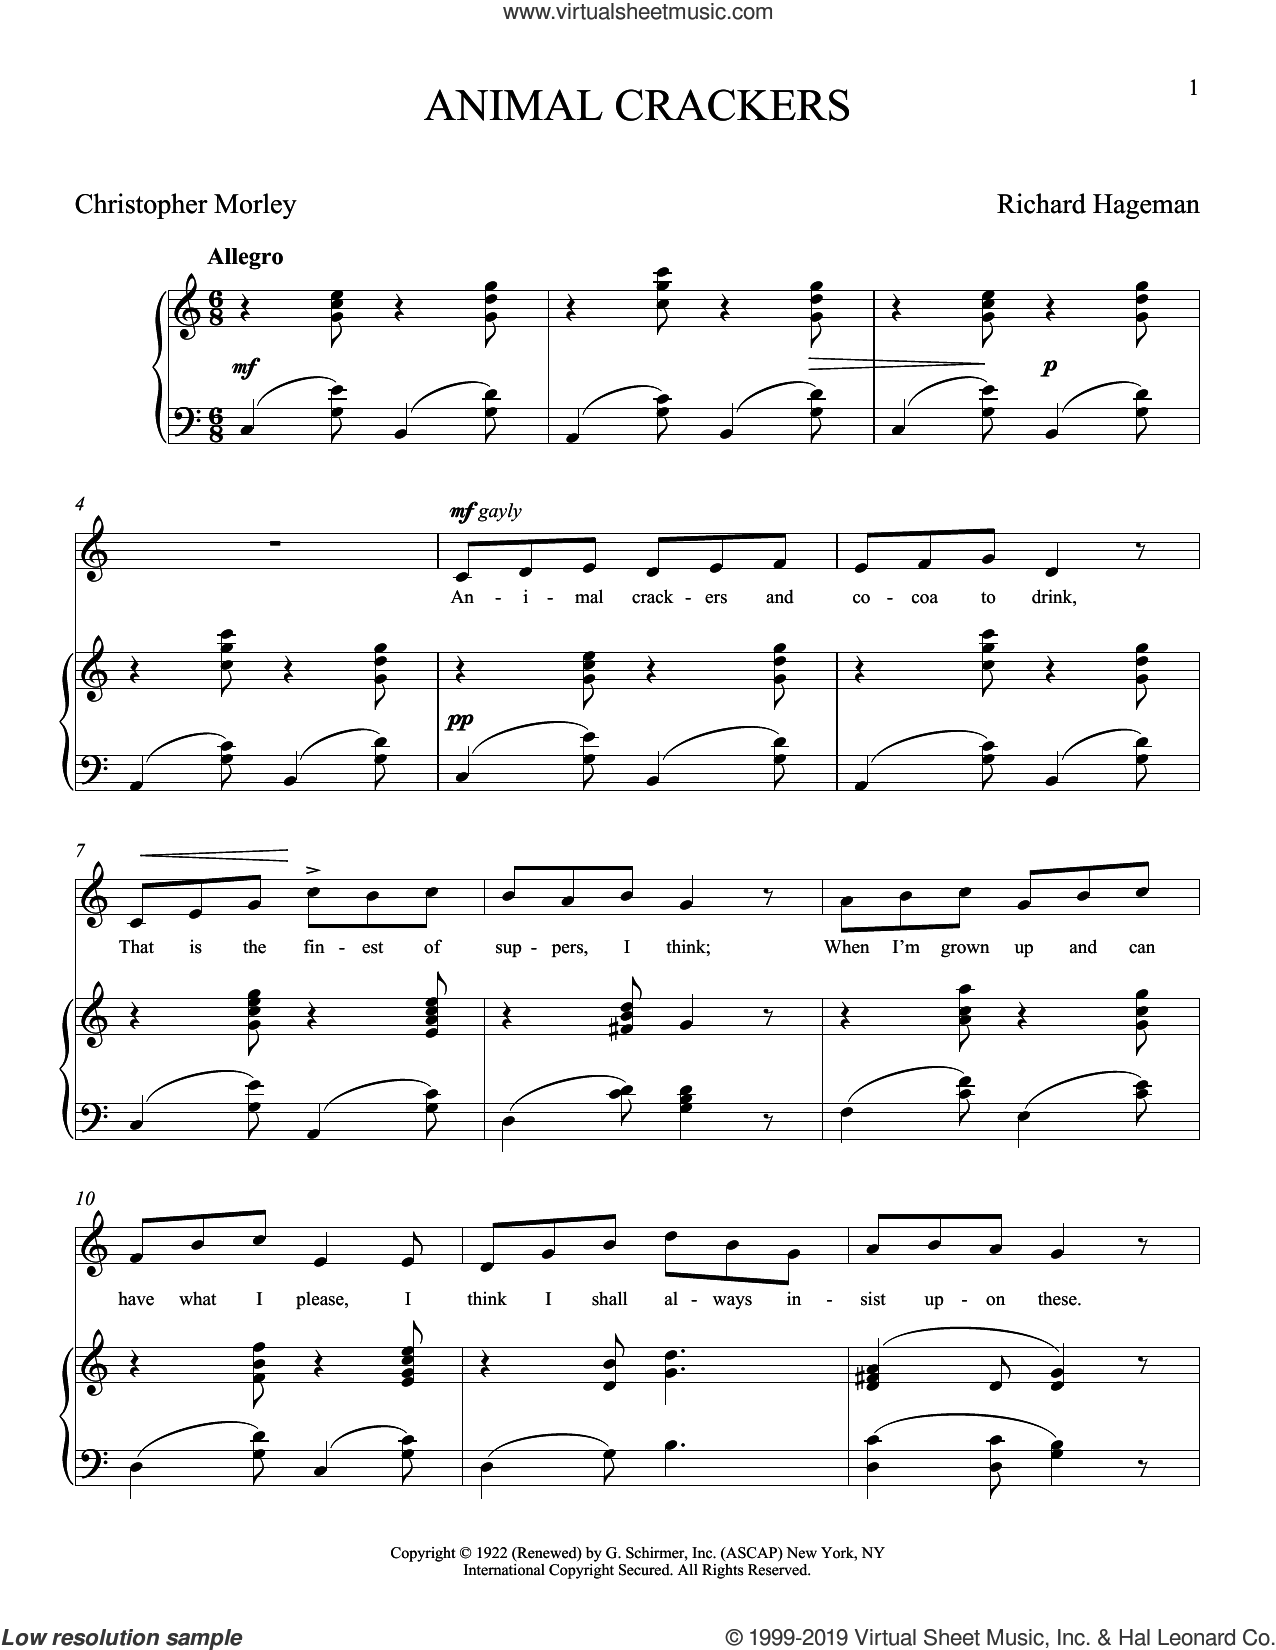 Animal Crackers sheet music for voice and piano by Christopher Morley, Joan Frey Boytim and Richard Hageman, classical score, intermediate skill level